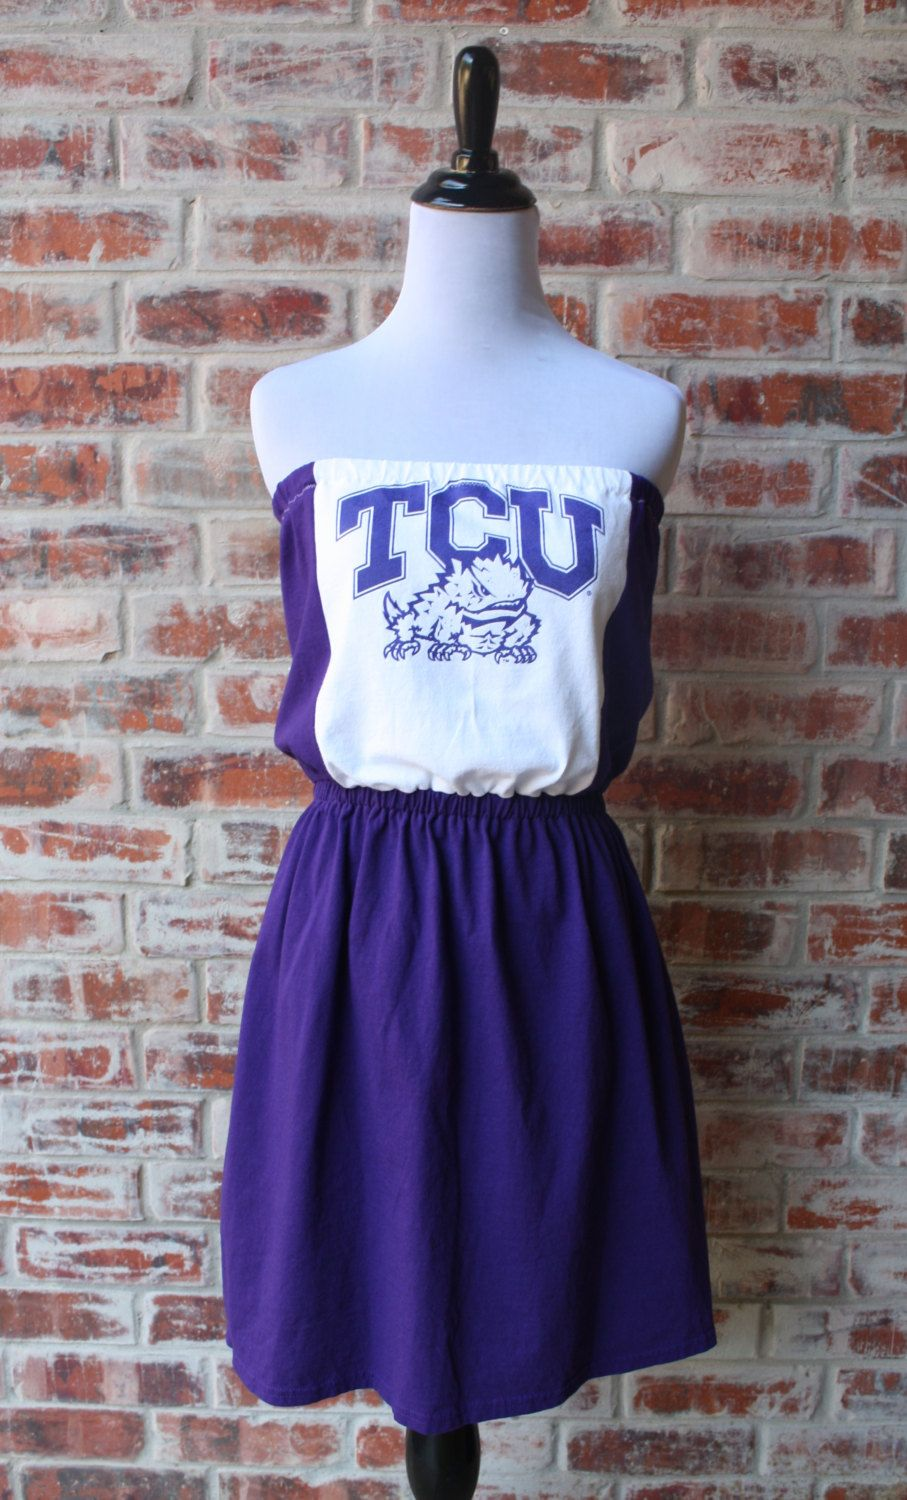 Texas Christian University TCU Horned Frogs Game Day Strapless Dress by Jill Be Nimble on Etsy.  Great TCU gameday dress or gameday outfit.  It's a one of a kind!